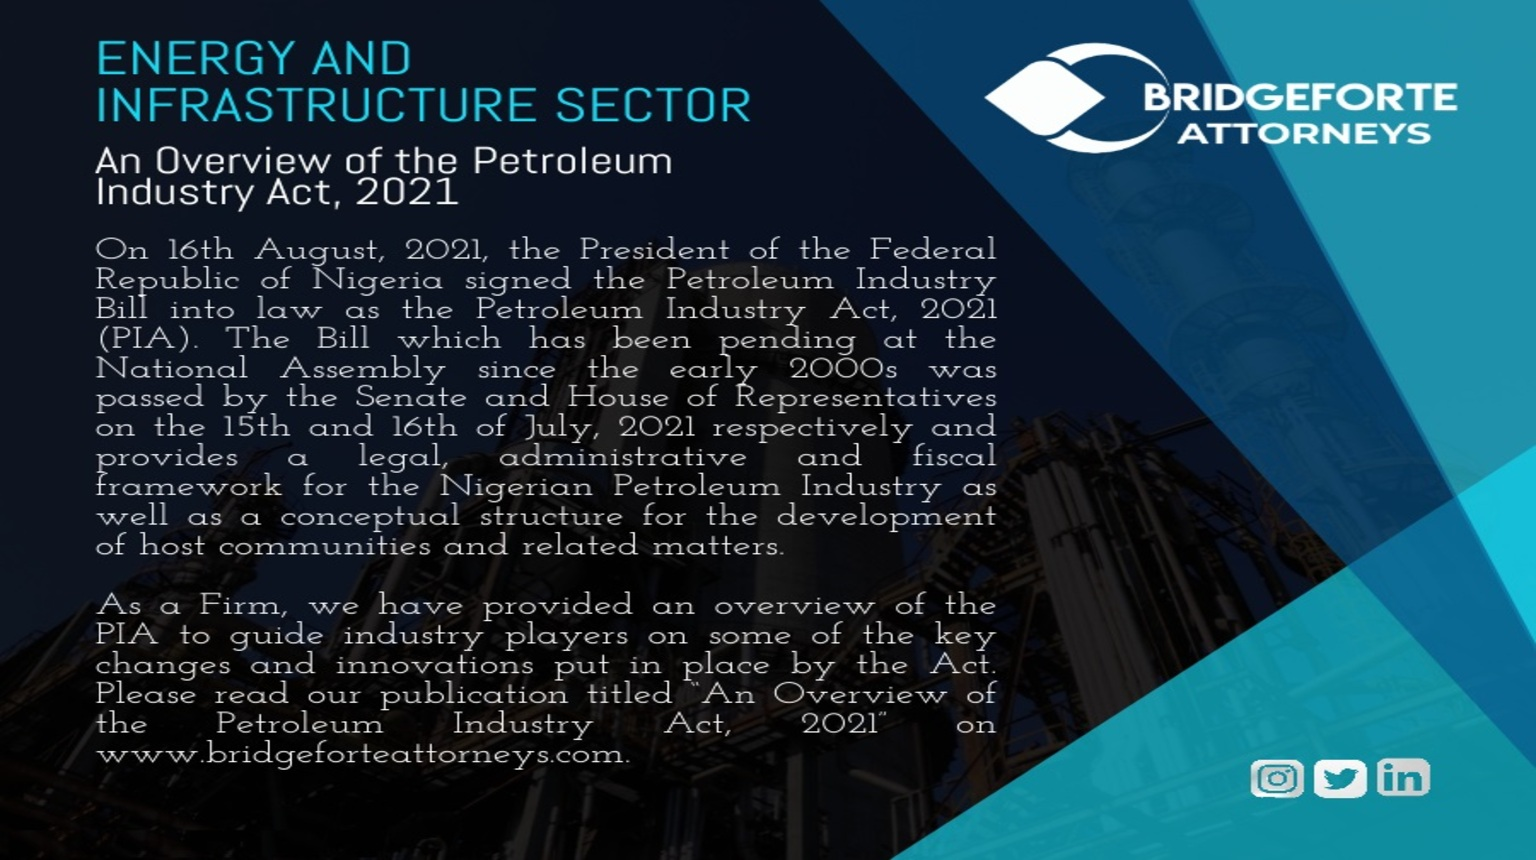 AN OVERVIEW OF THE PETROLEUM INDUSTRY ACT, 2021